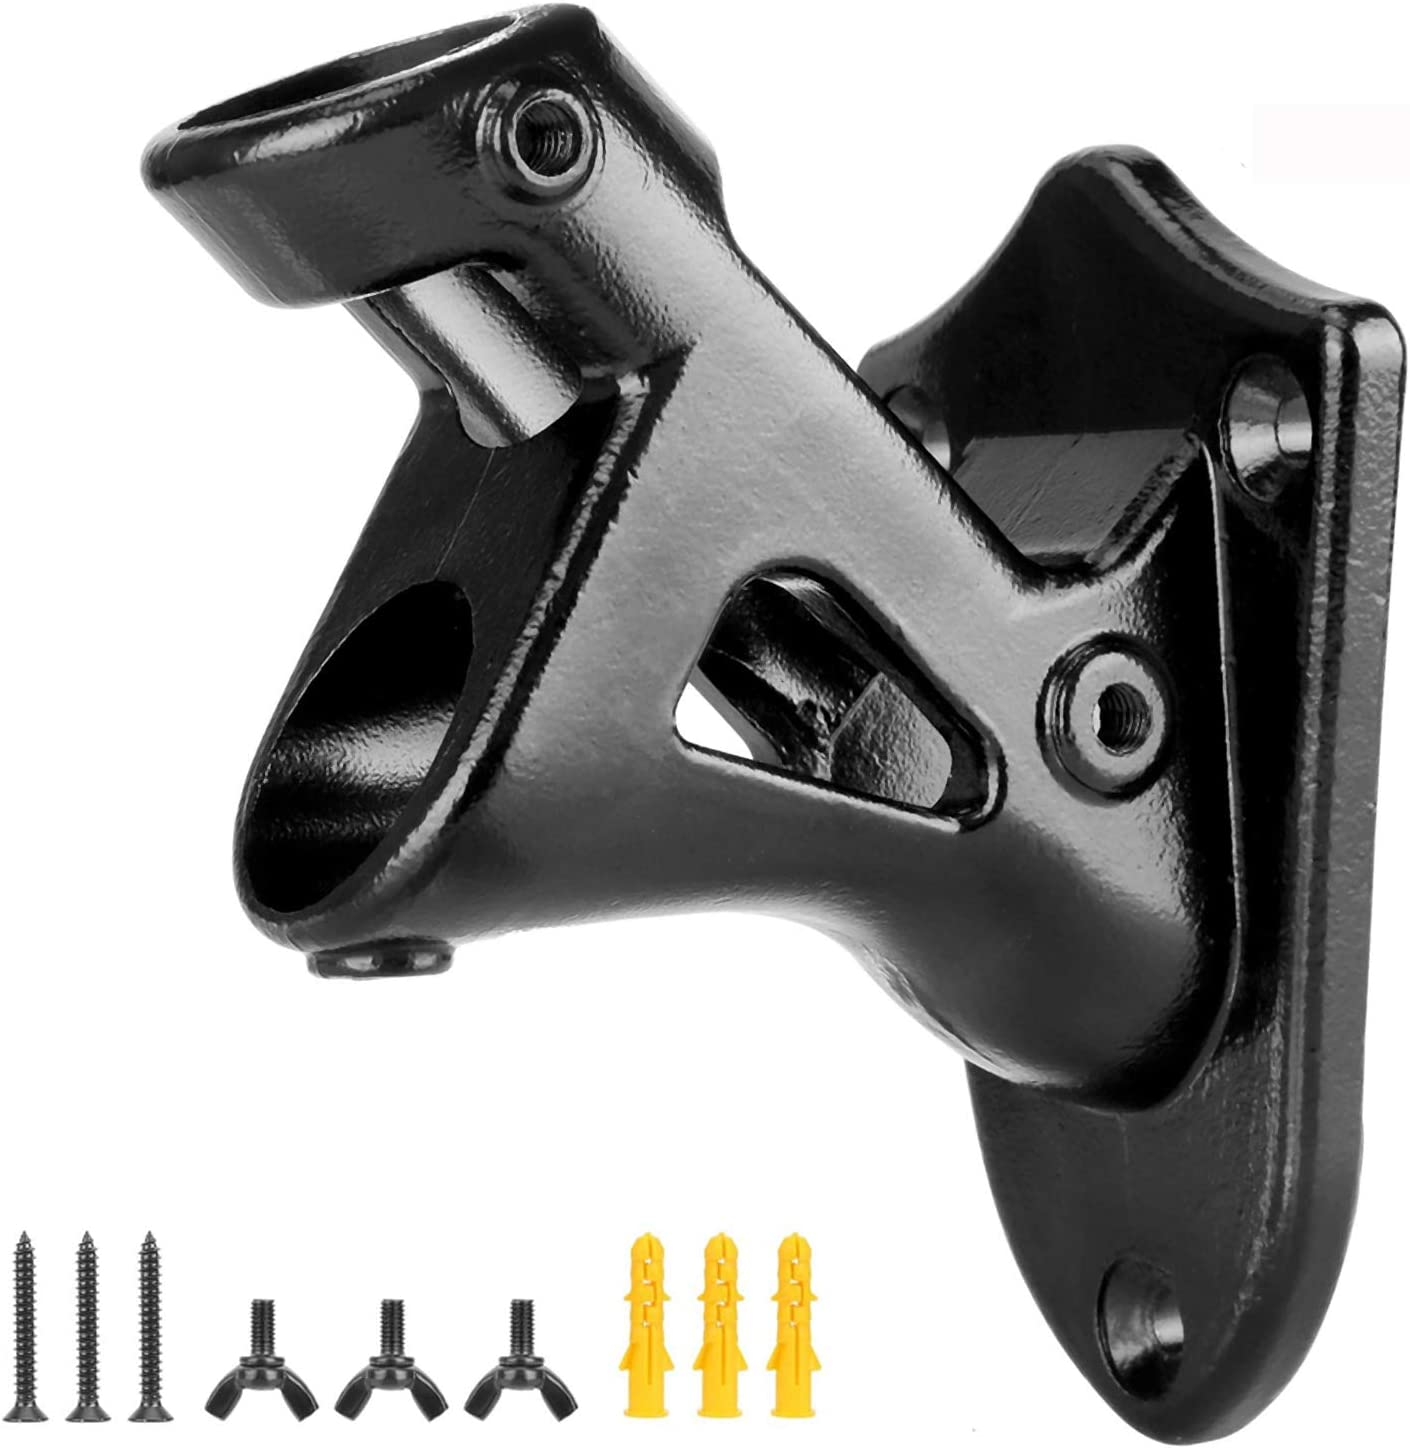 BEMOTA Heavy Duty Stainless Steel Flag Pole Brackets,2 Positions for 1 inch Flag Pole, Anti-Strong Wind Outdoor Wall Mount House Flag Pole Holder,Metal Flag Pole Mounting Bracket